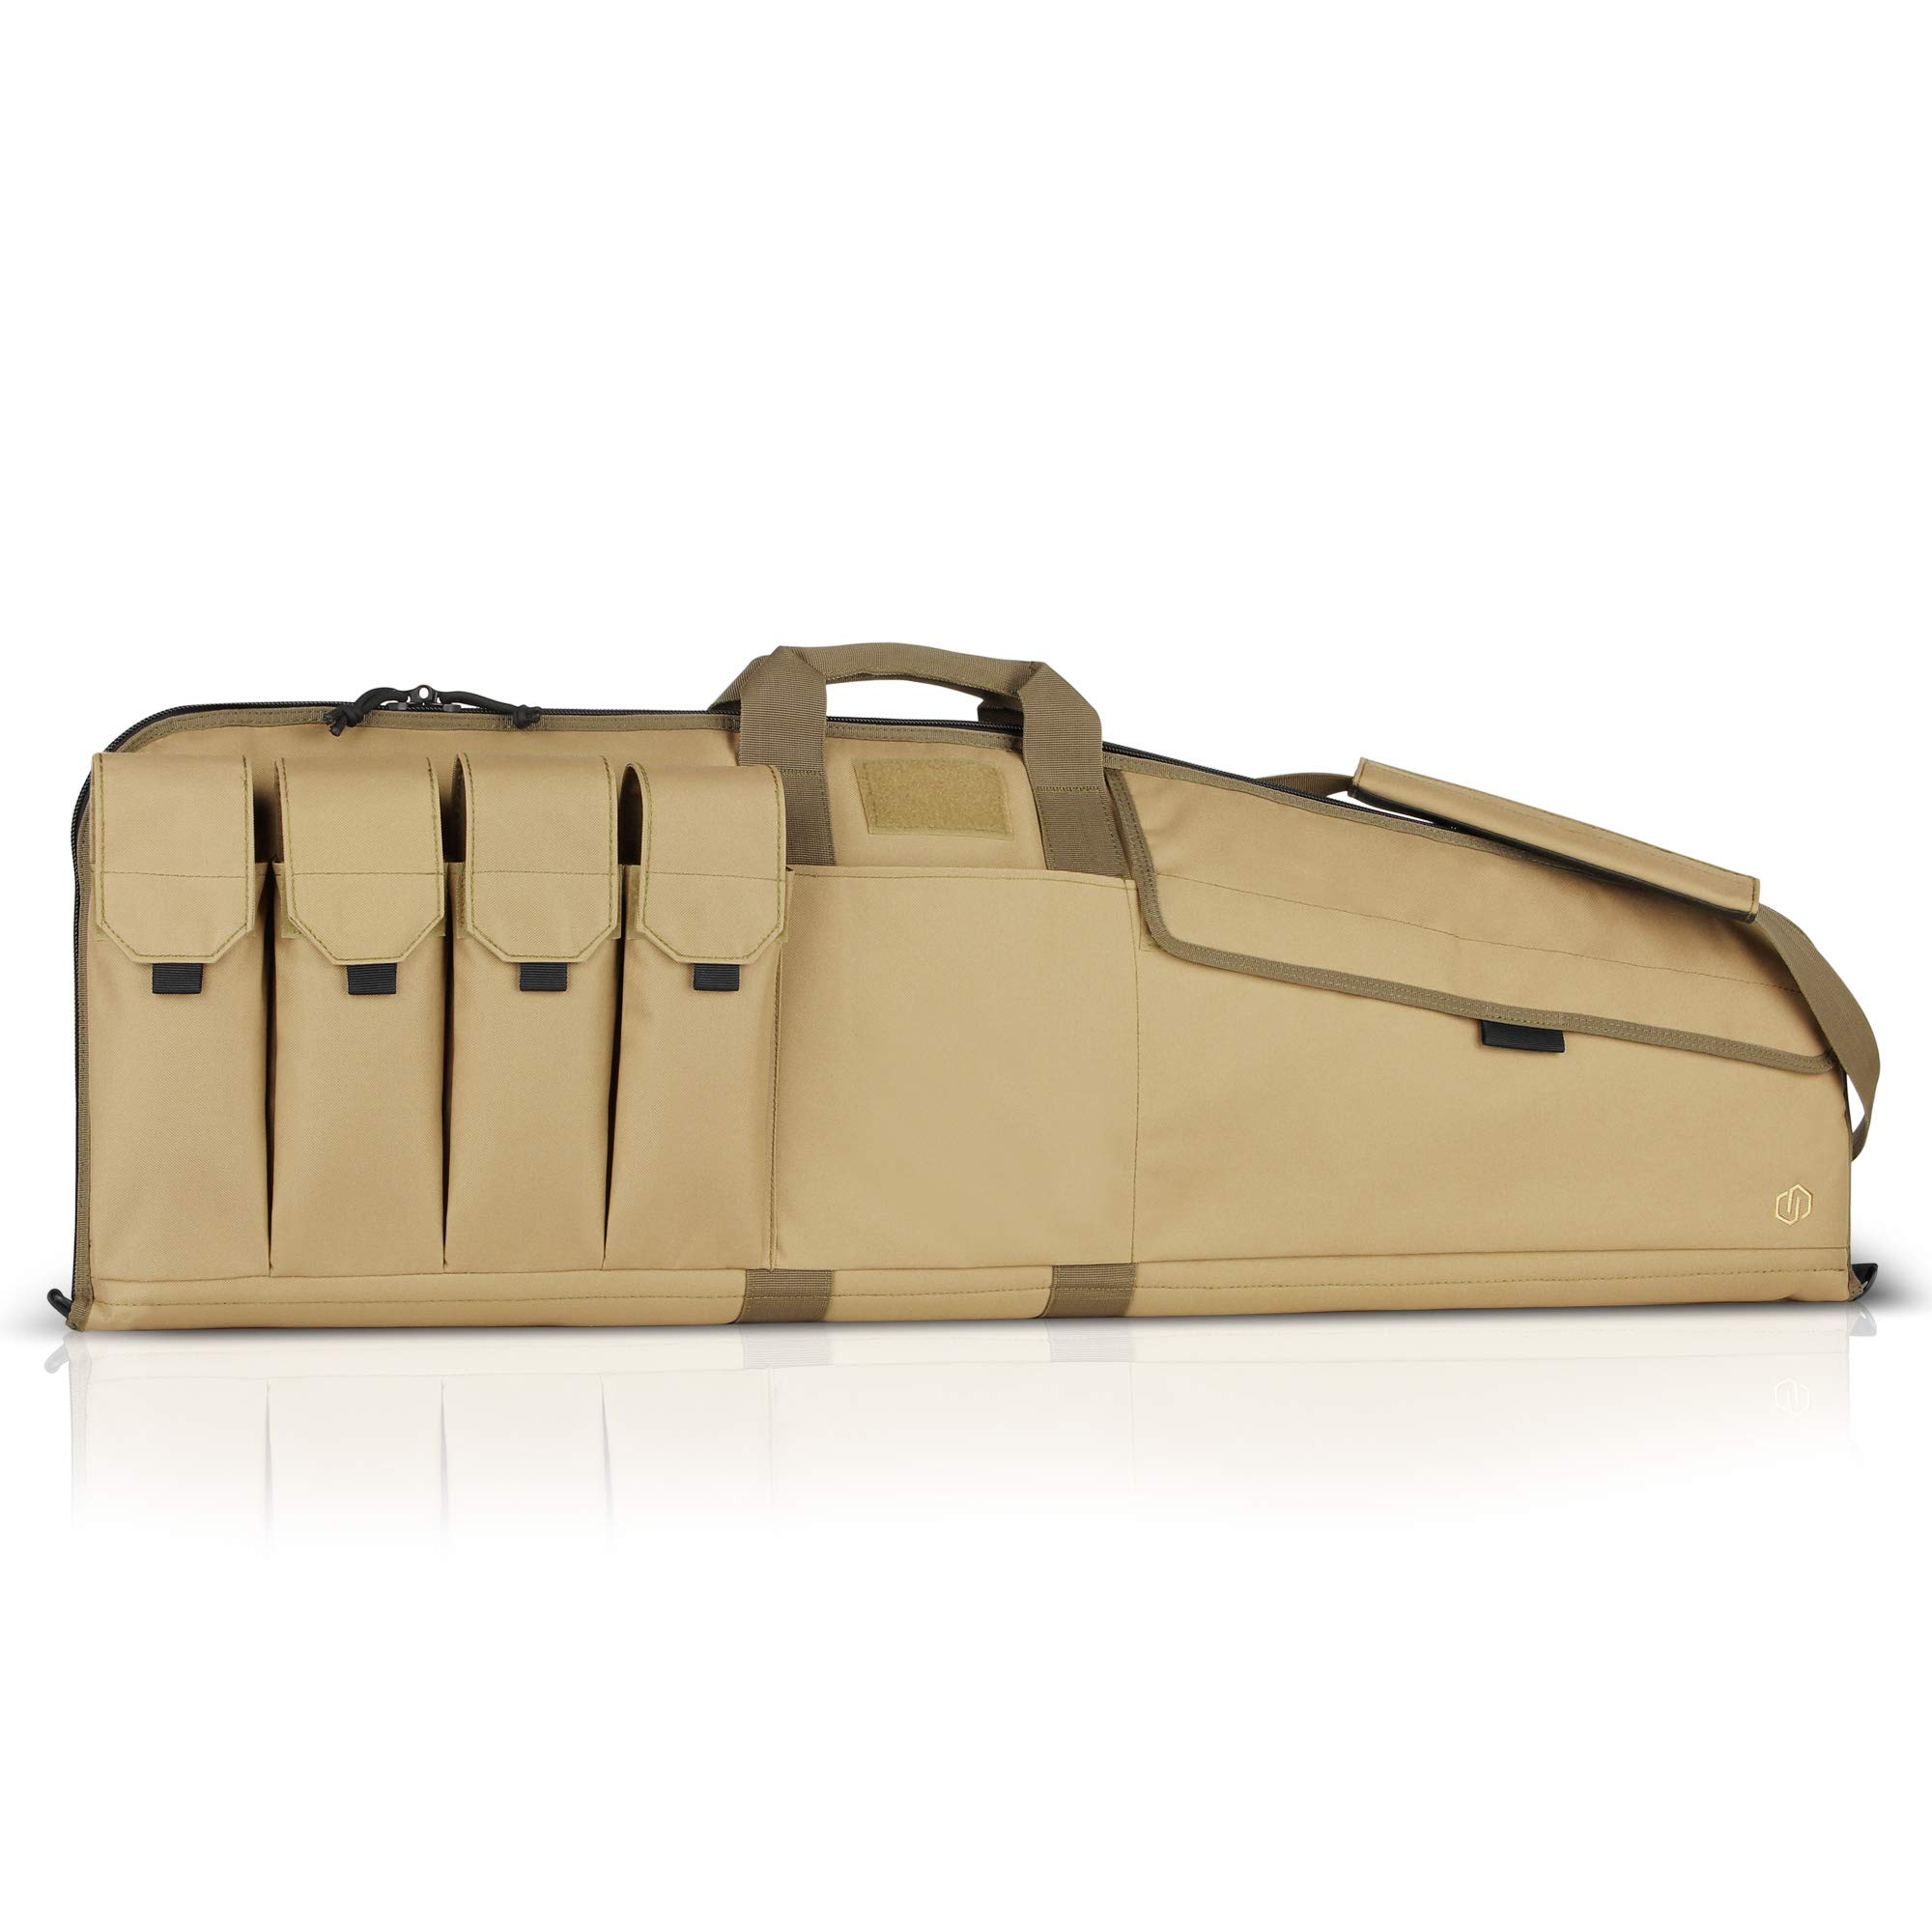 Savior Equipment The Patriot 42'' Single Rifle Gun Tactical Bag - Flat Dark Earth Tan by Savior Equipment